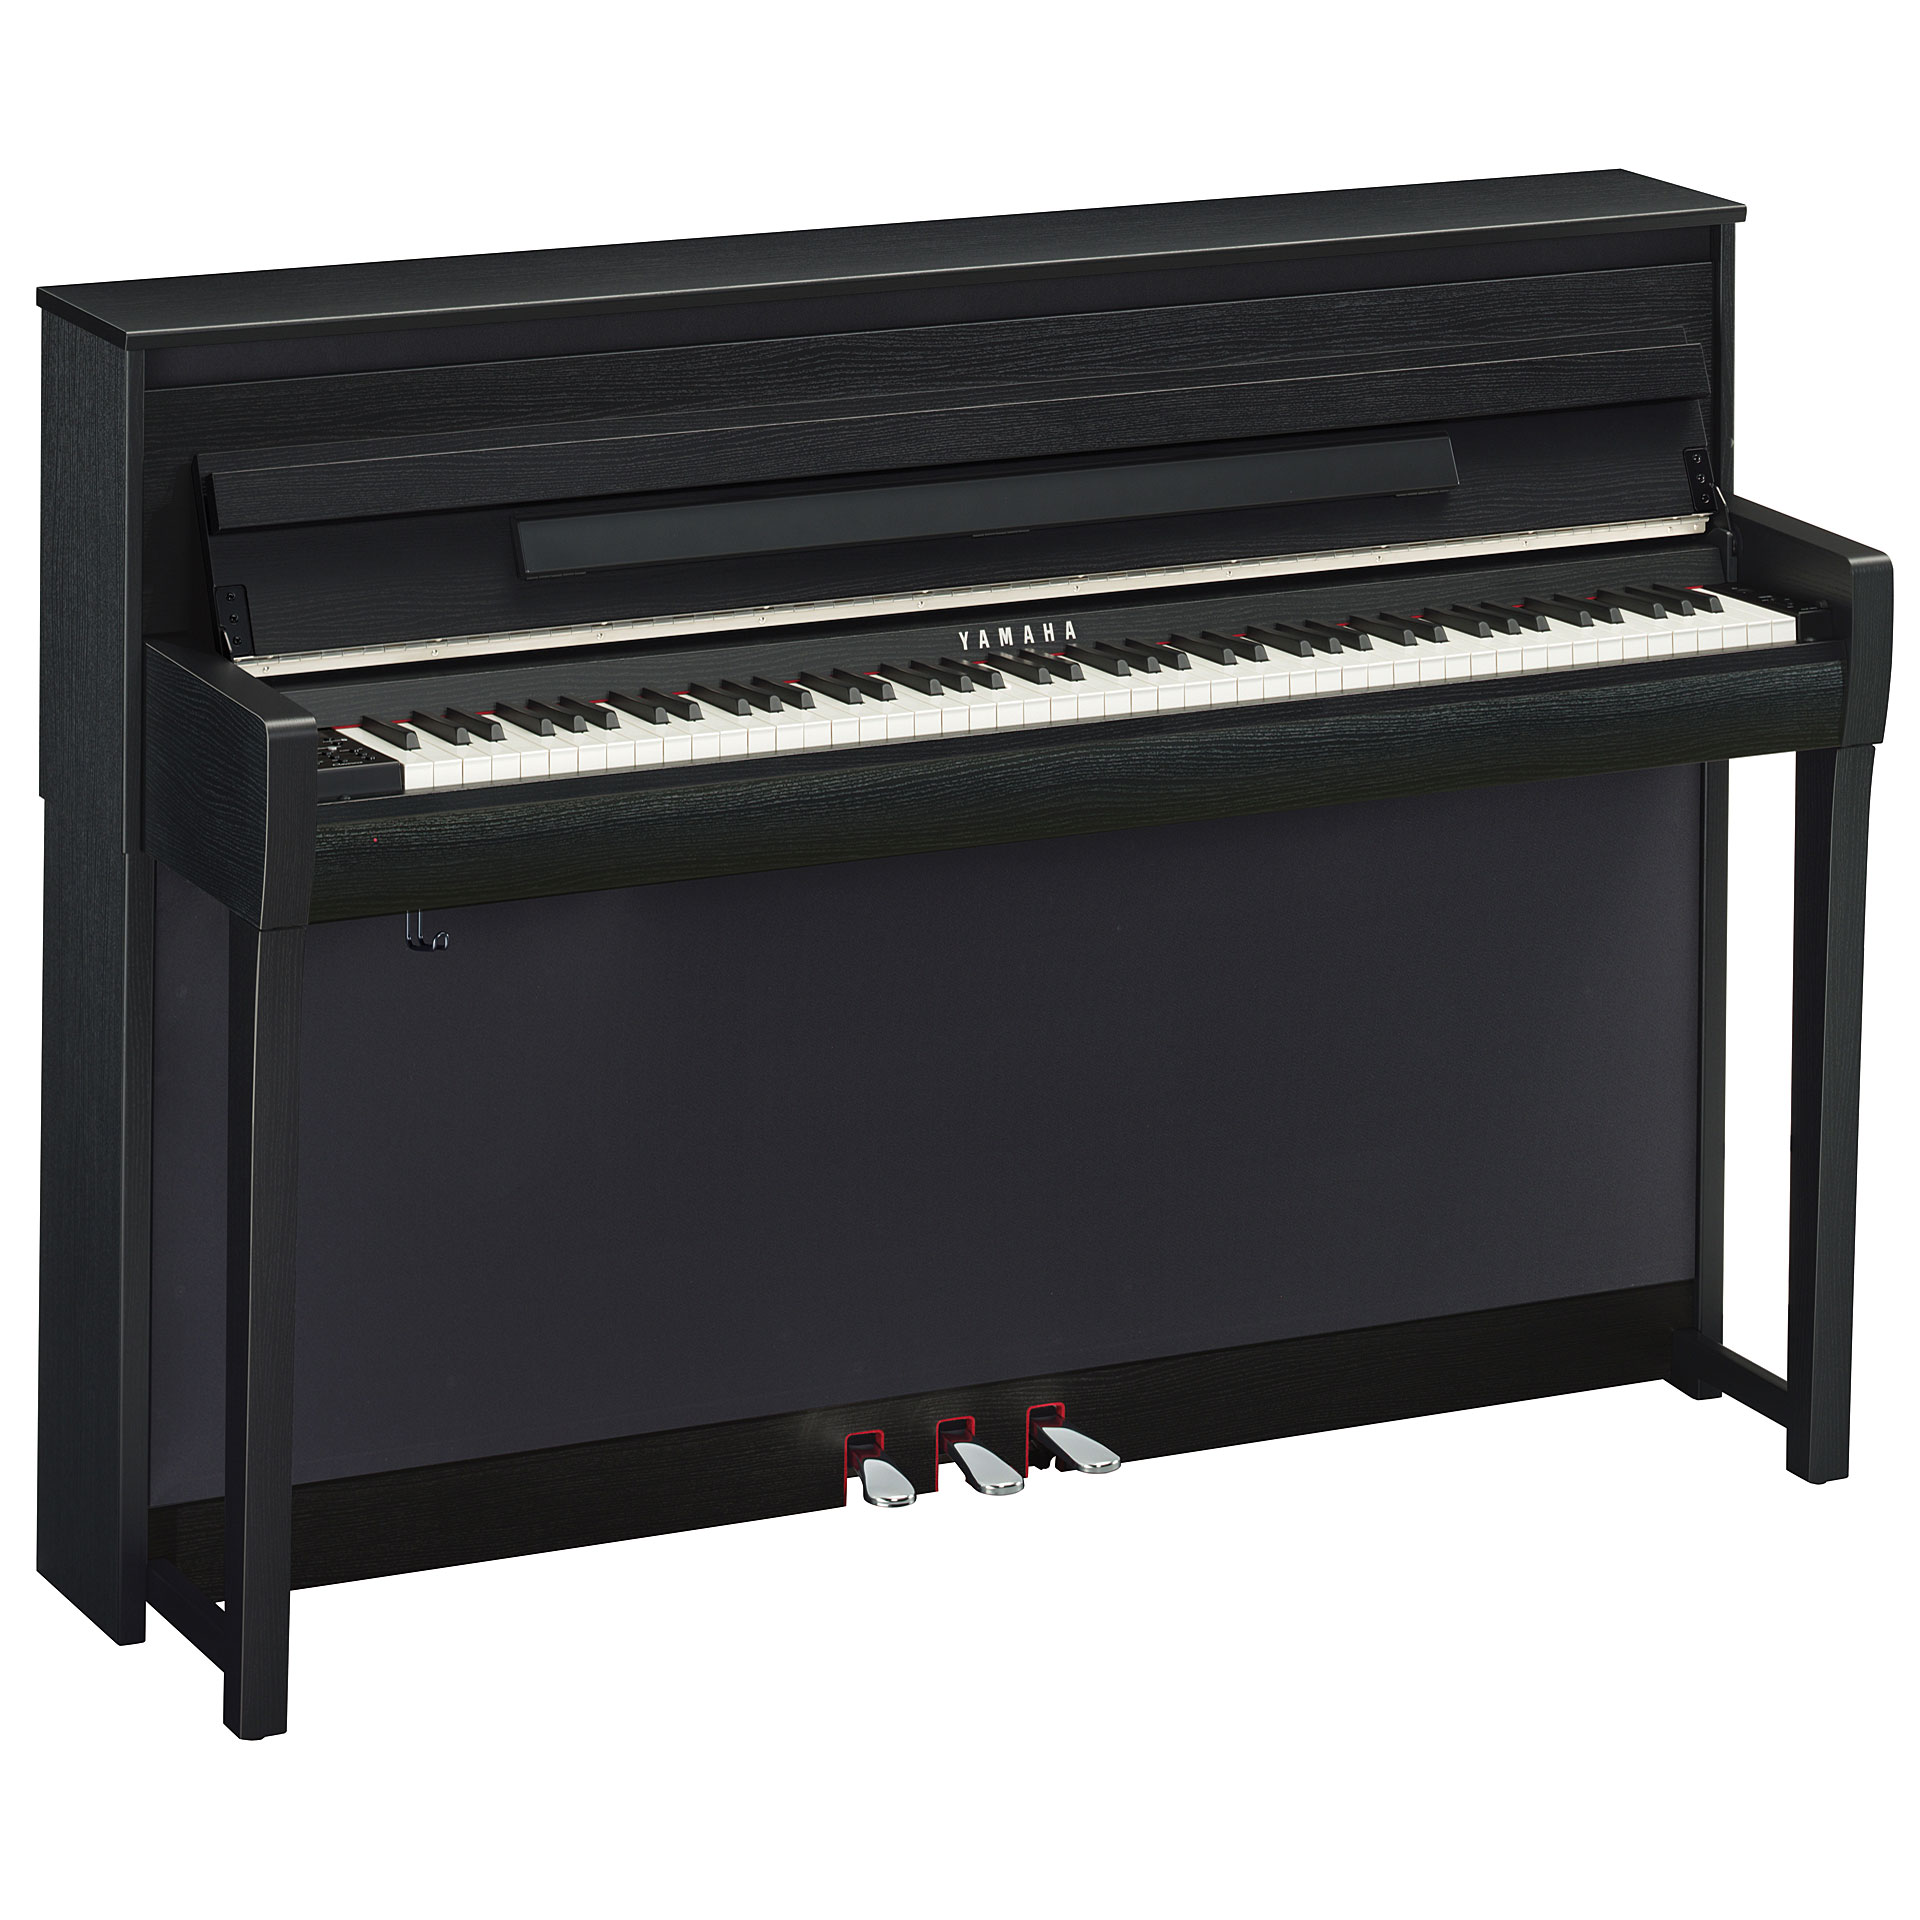 yamaha clavinova clp 685b digitalpiano. Black Bedroom Furniture Sets. Home Design Ideas